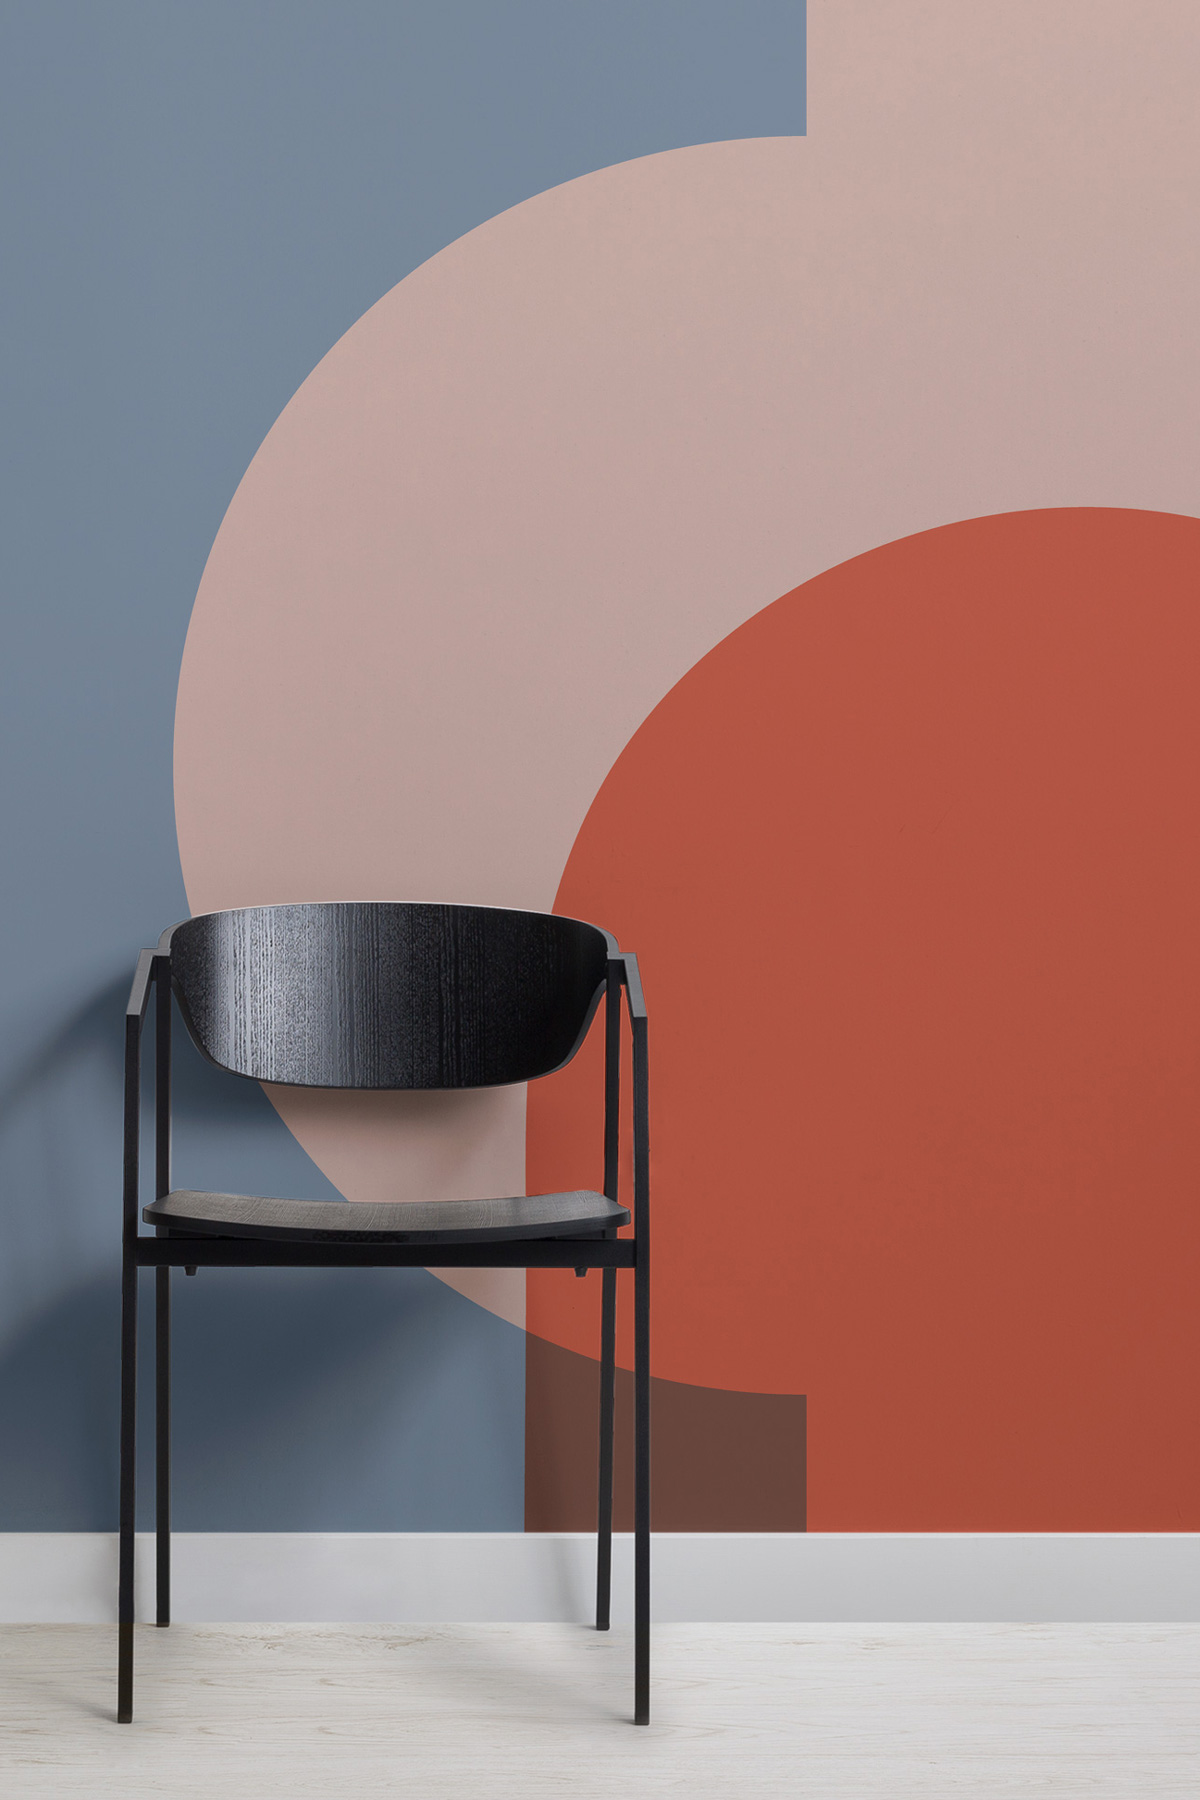 CELEBRATE THE BAUHAUS CENTENARY IN STYLE